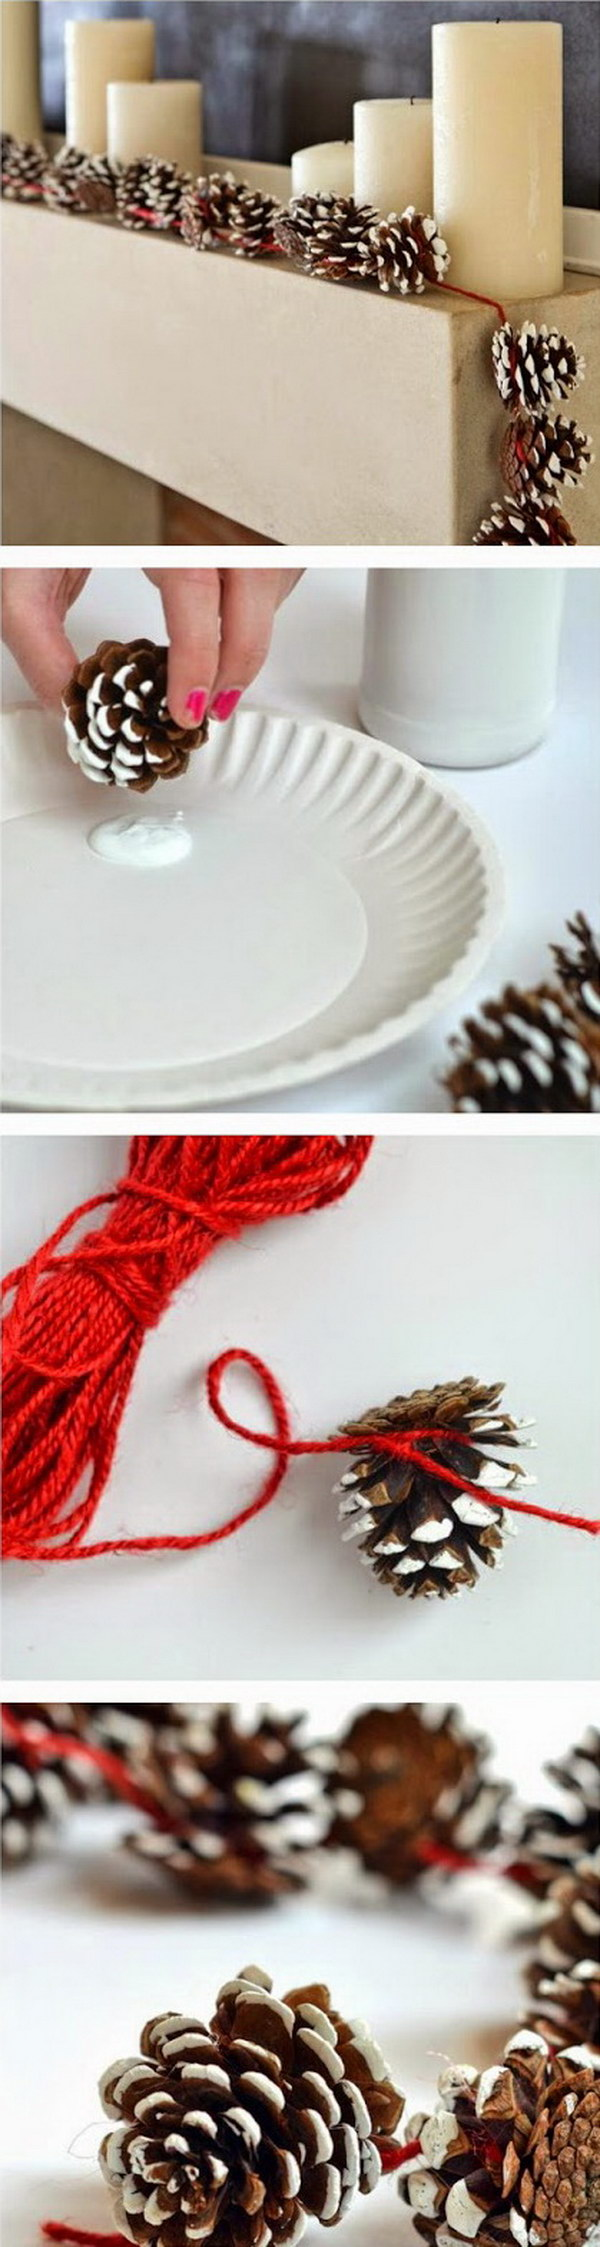 Pine Cone Garlands for Christmas Decoration. Love its rustic look for decoration at home. Super easy crafts that can get your kids